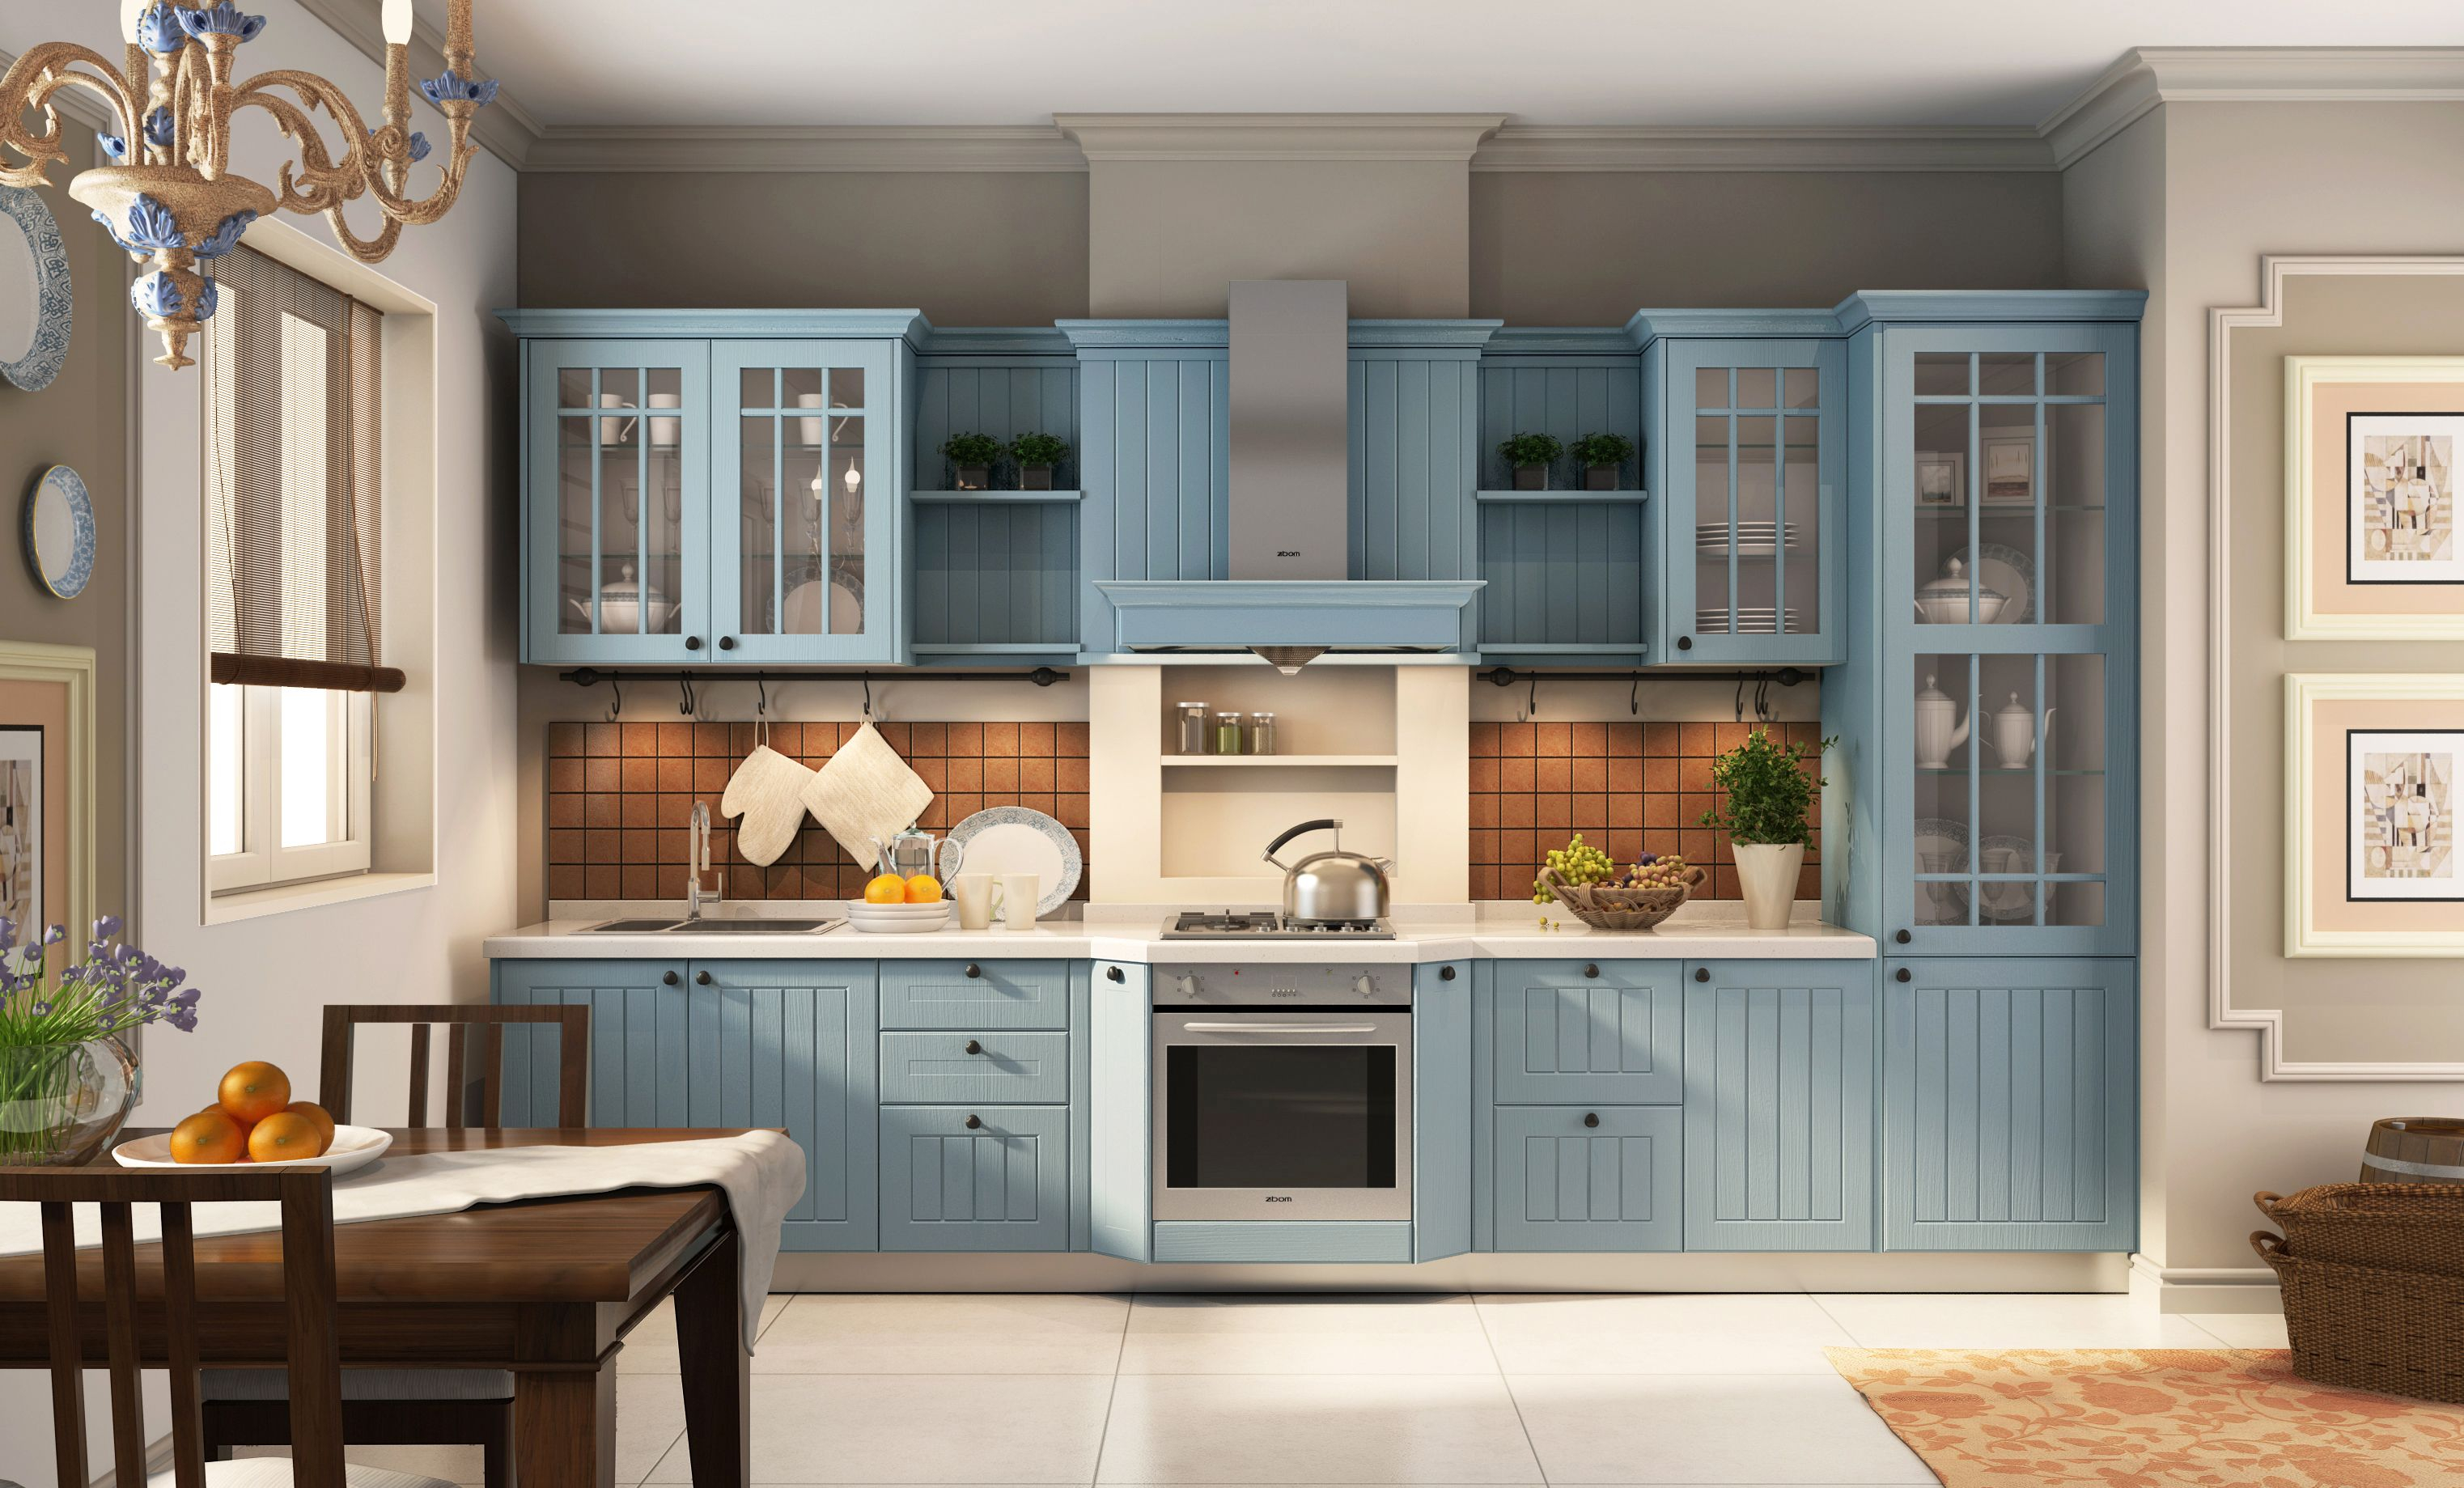 Pin By Zbomcabinets On Danube Kitchen Design Your Dream House Kitchen Collection Cabinet Manufacturers